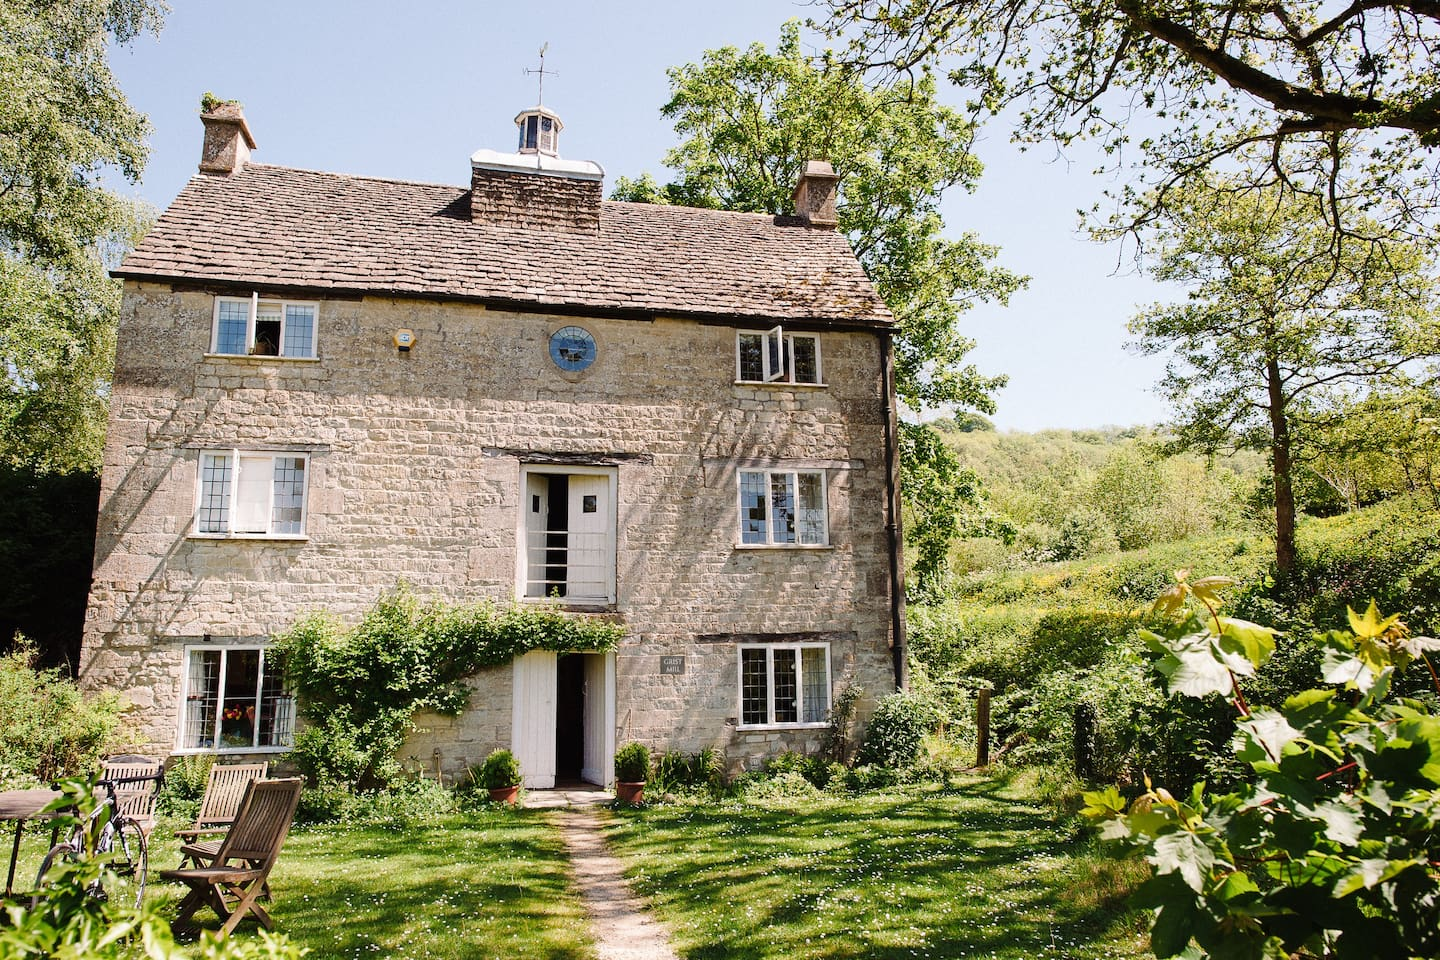 Exterior of the Grist Mill, a listed building dating to around 1726 and made of Cotswold limestone